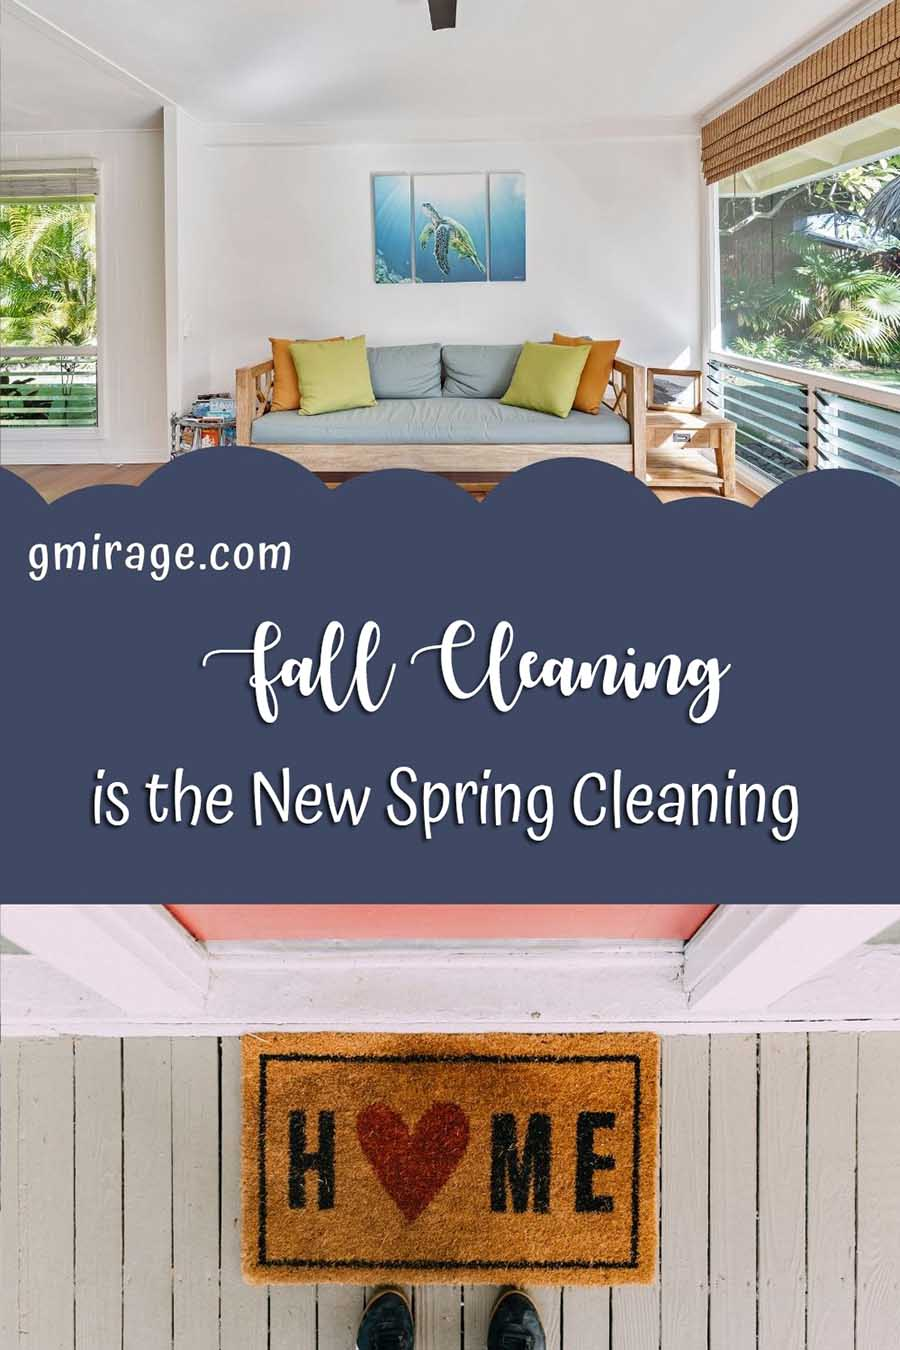 Fall Cleaning is the New Spring Cleaning